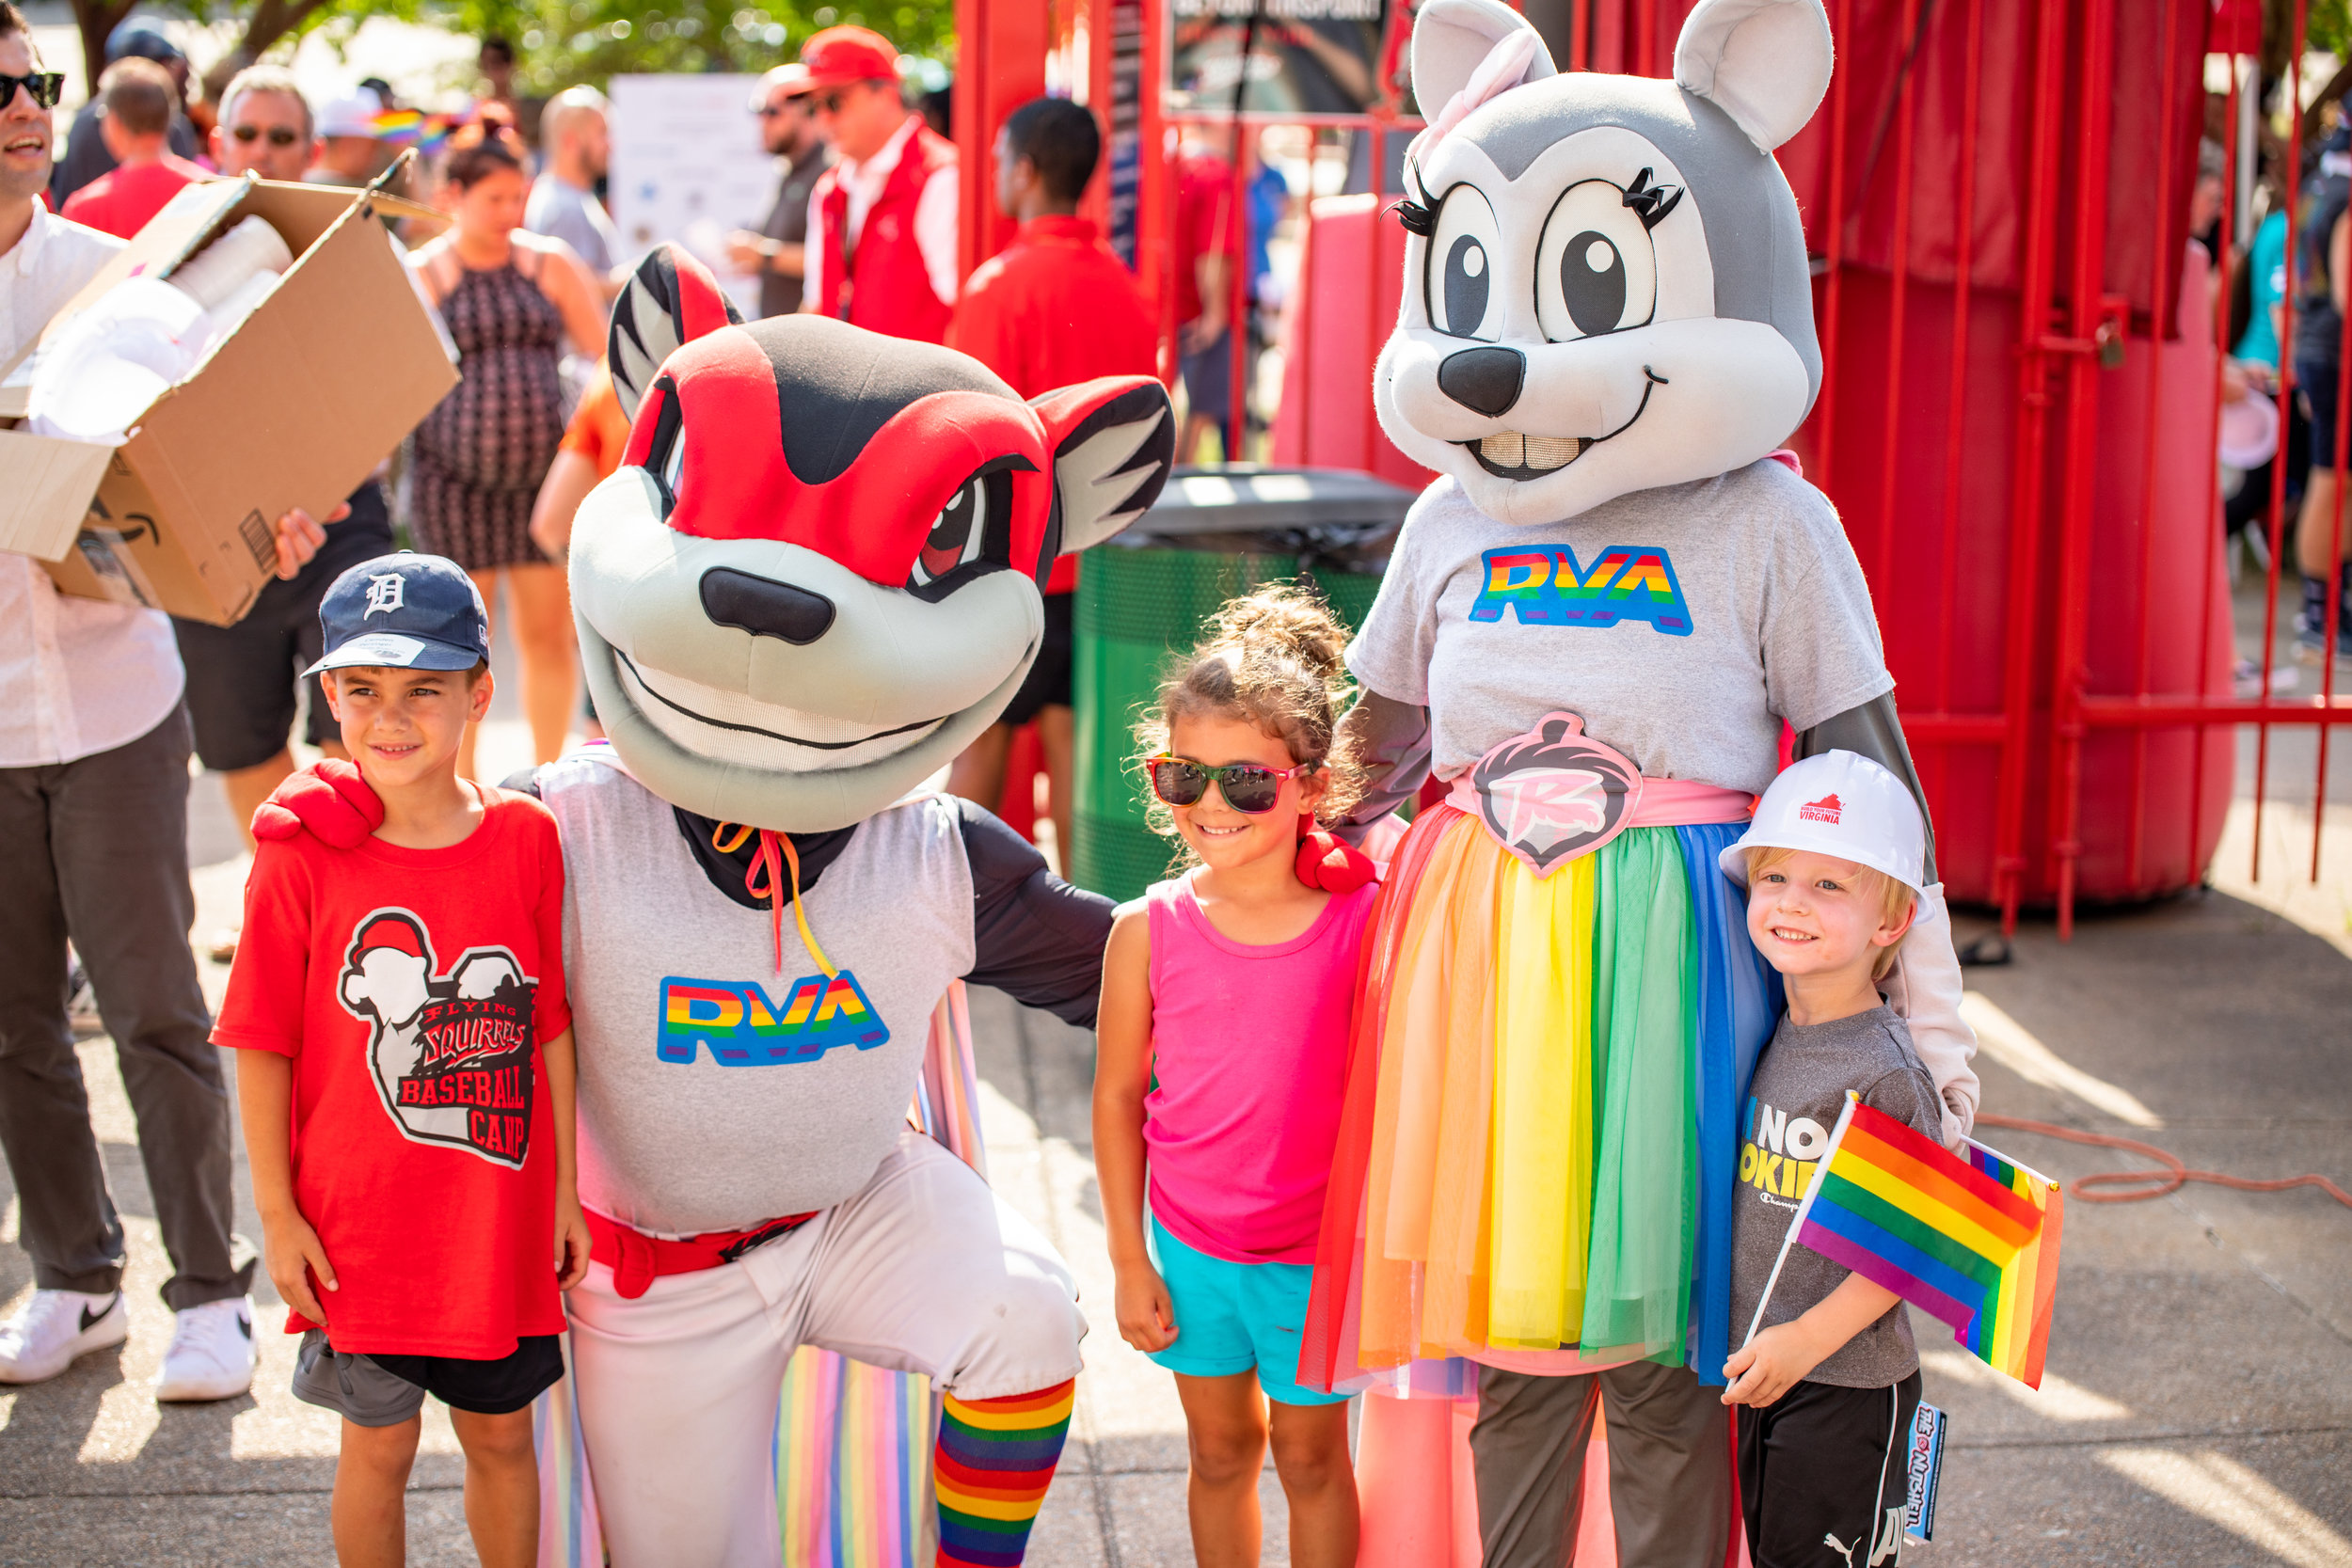 2019_0627_VirginiaPride_Squirrels_PrideNight_023.jpg